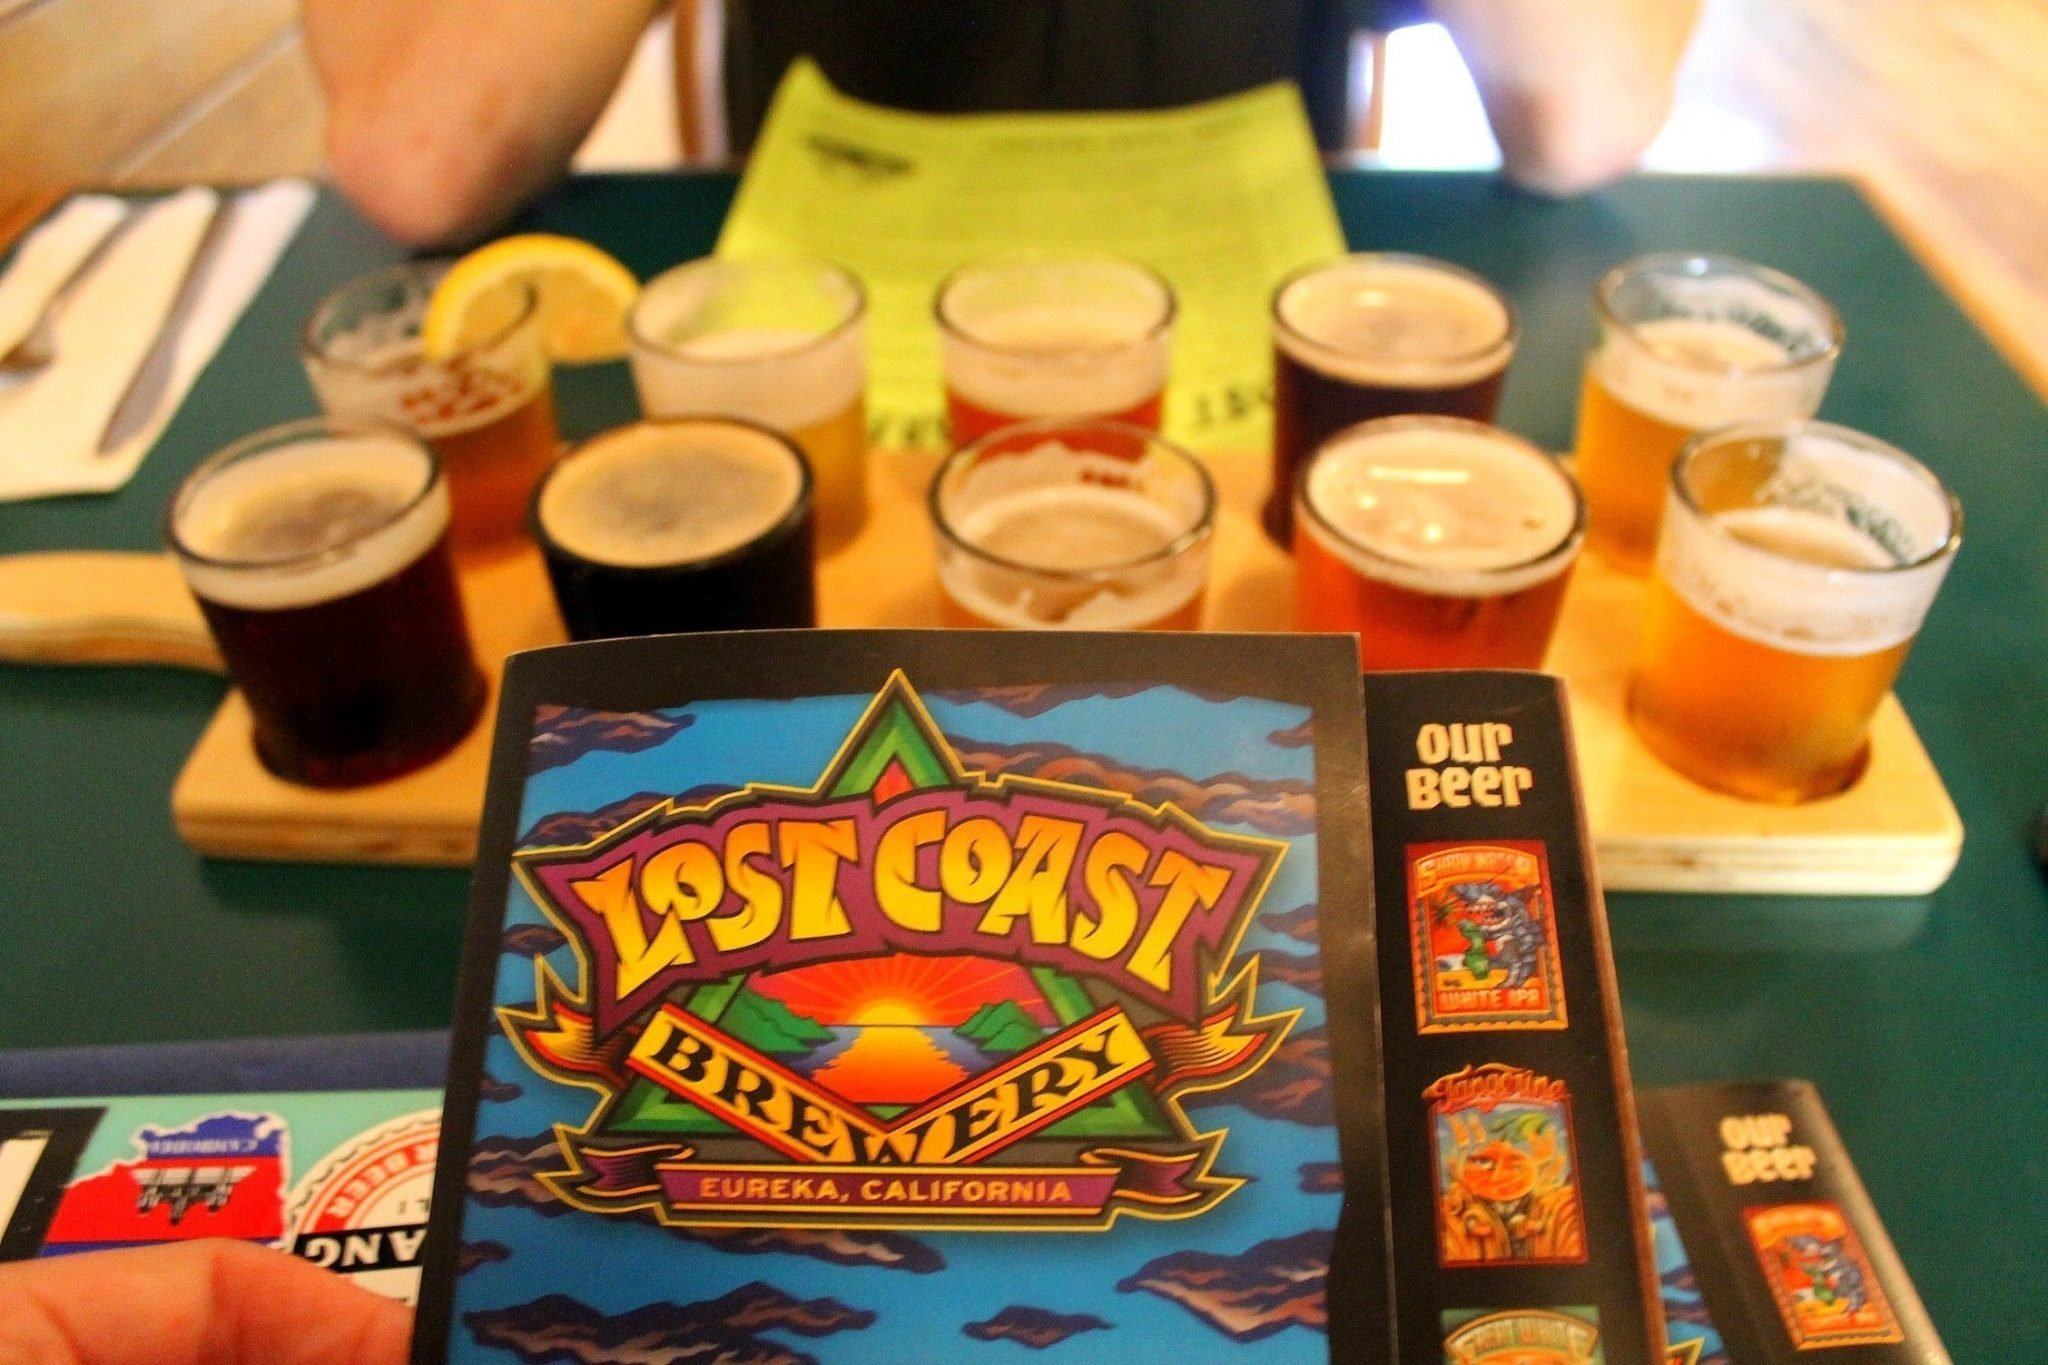 Lost Coast Brewery - Eureka, California - best breweries to visit in California